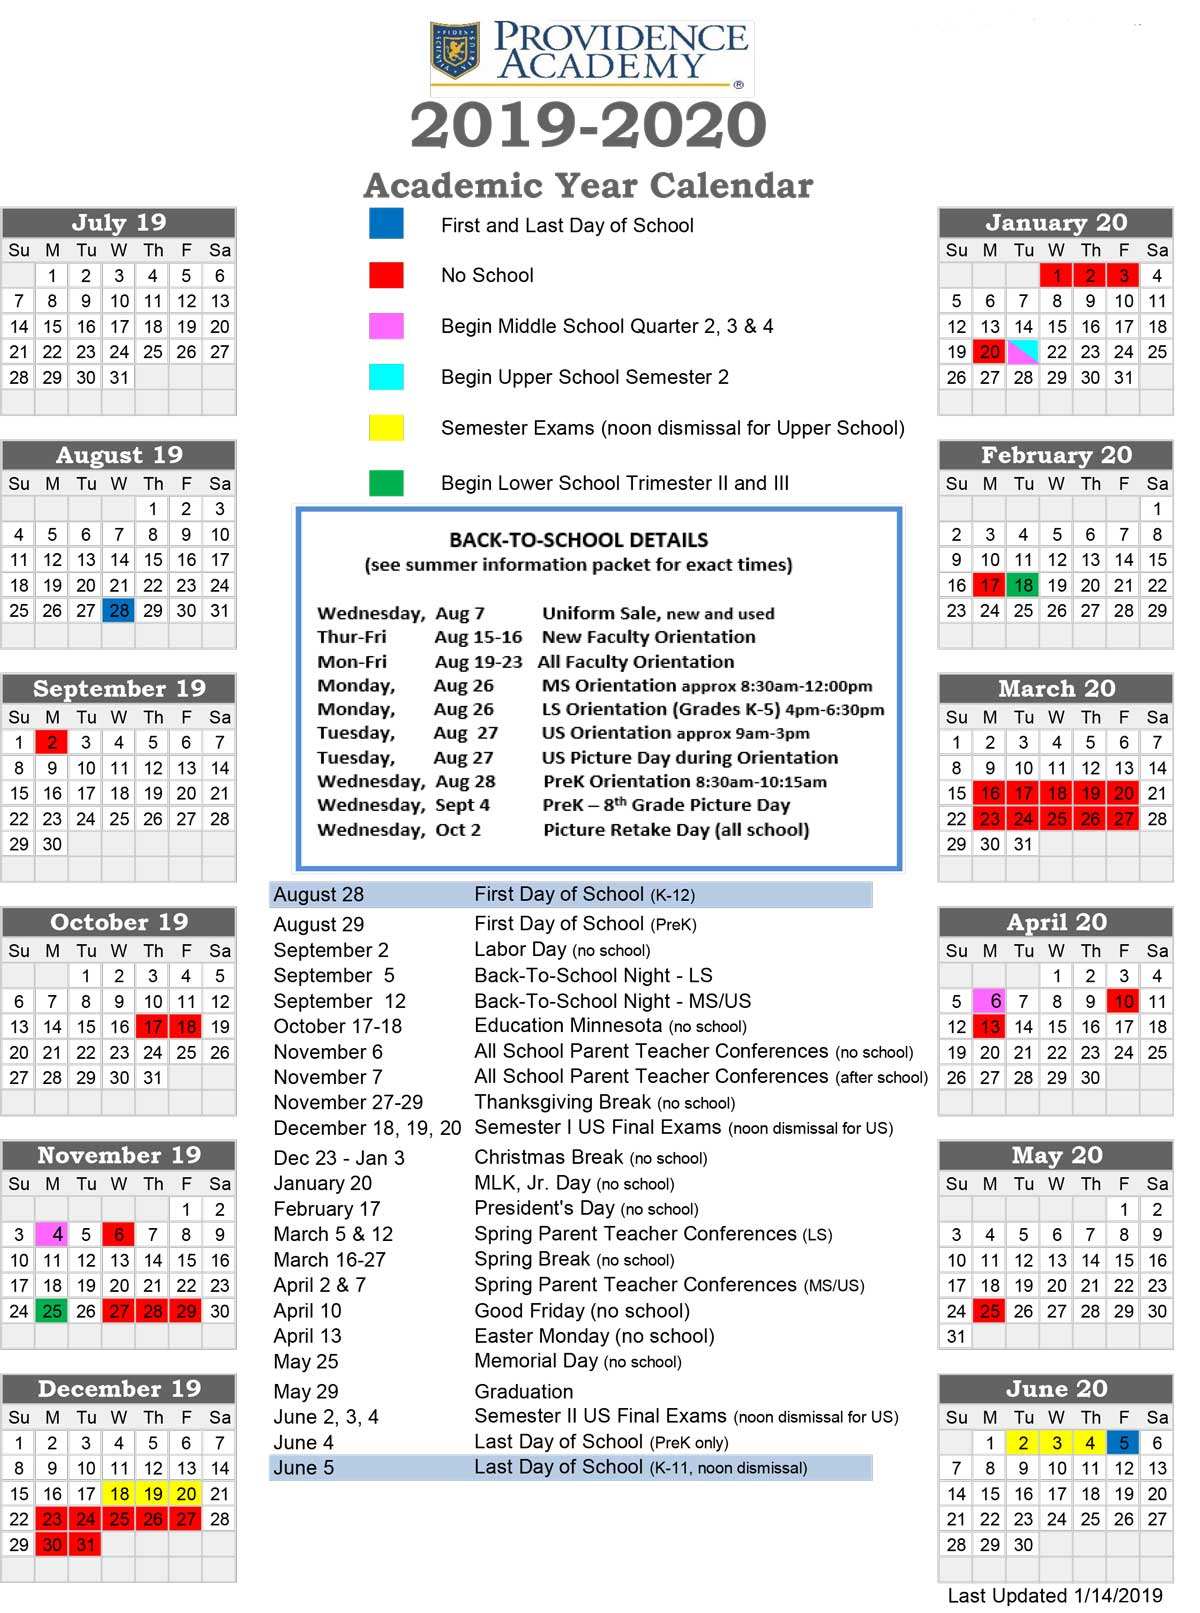 Academic Calendar - Providence Academy Regarding Univ Of Mn Academic Calendar Twin City Campus